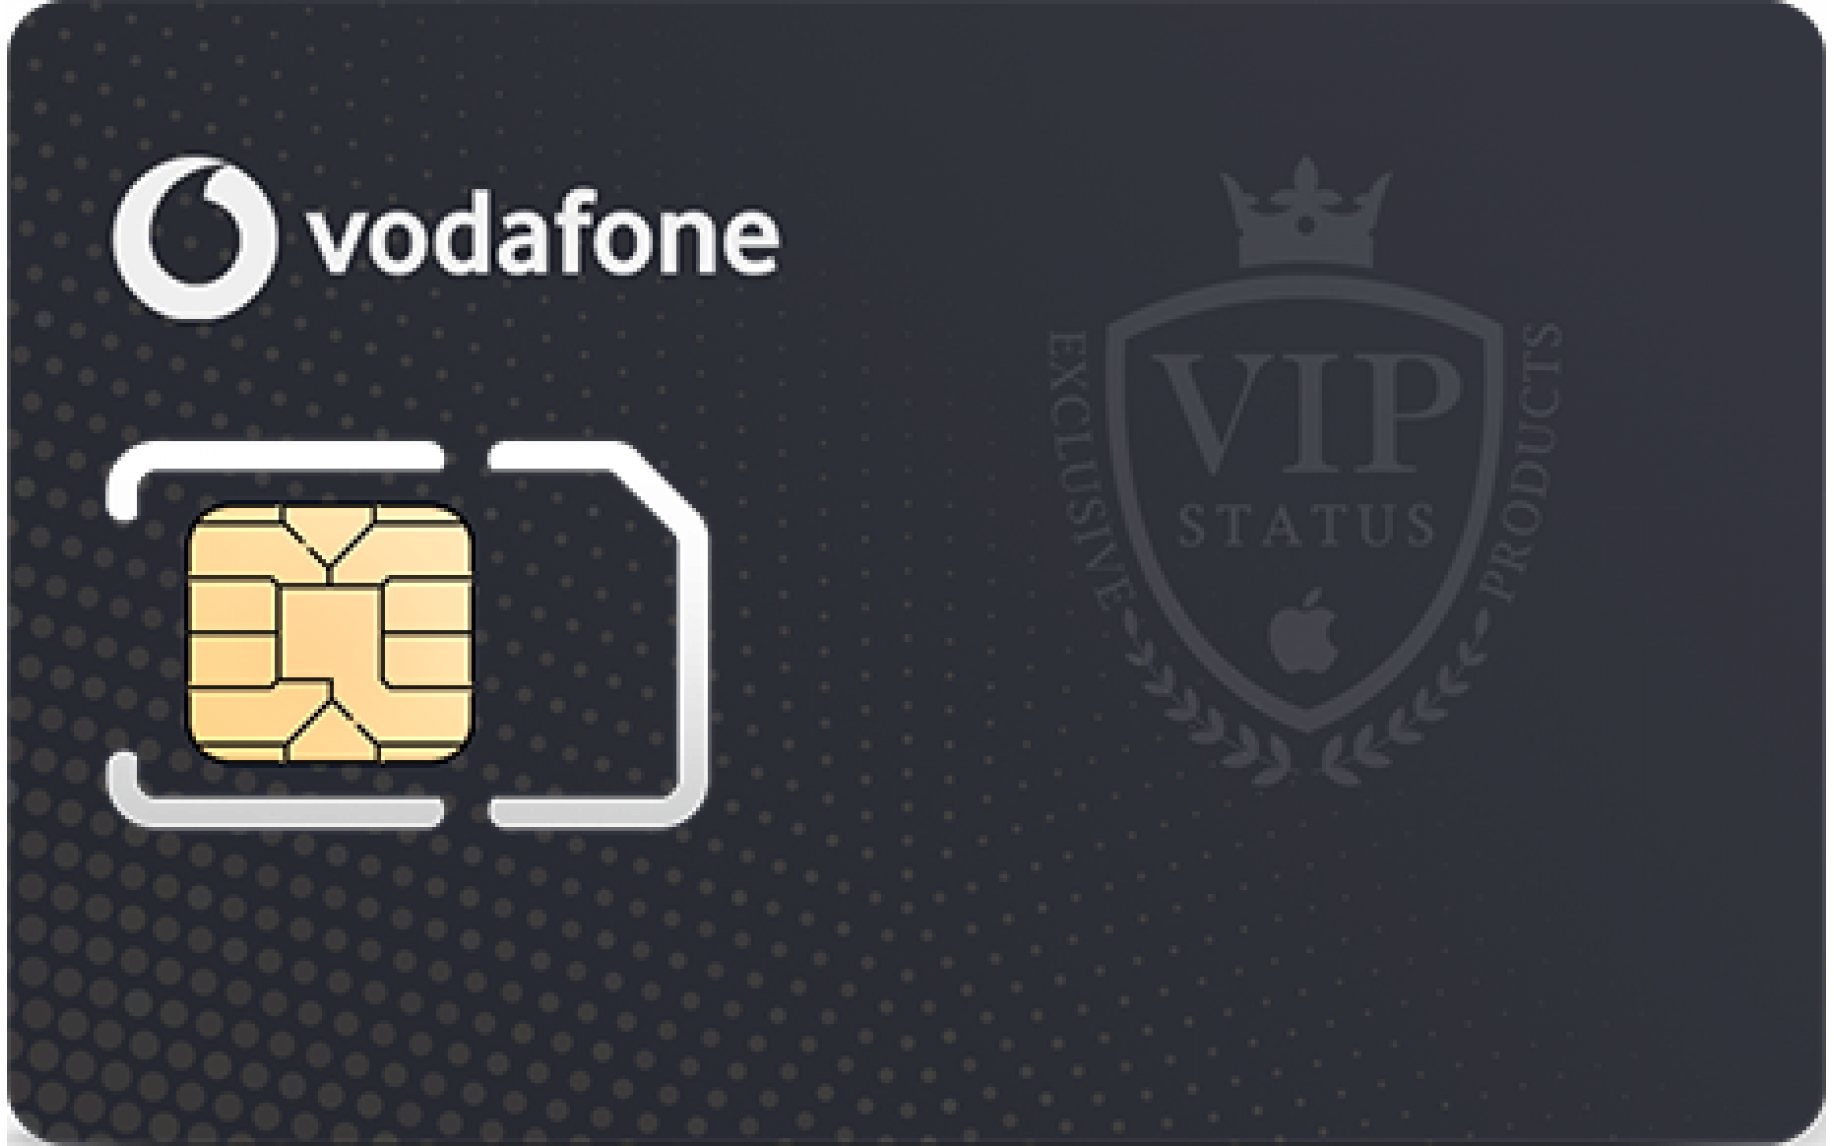 Exclusive Vodafone phone number: +380955555559 image 1